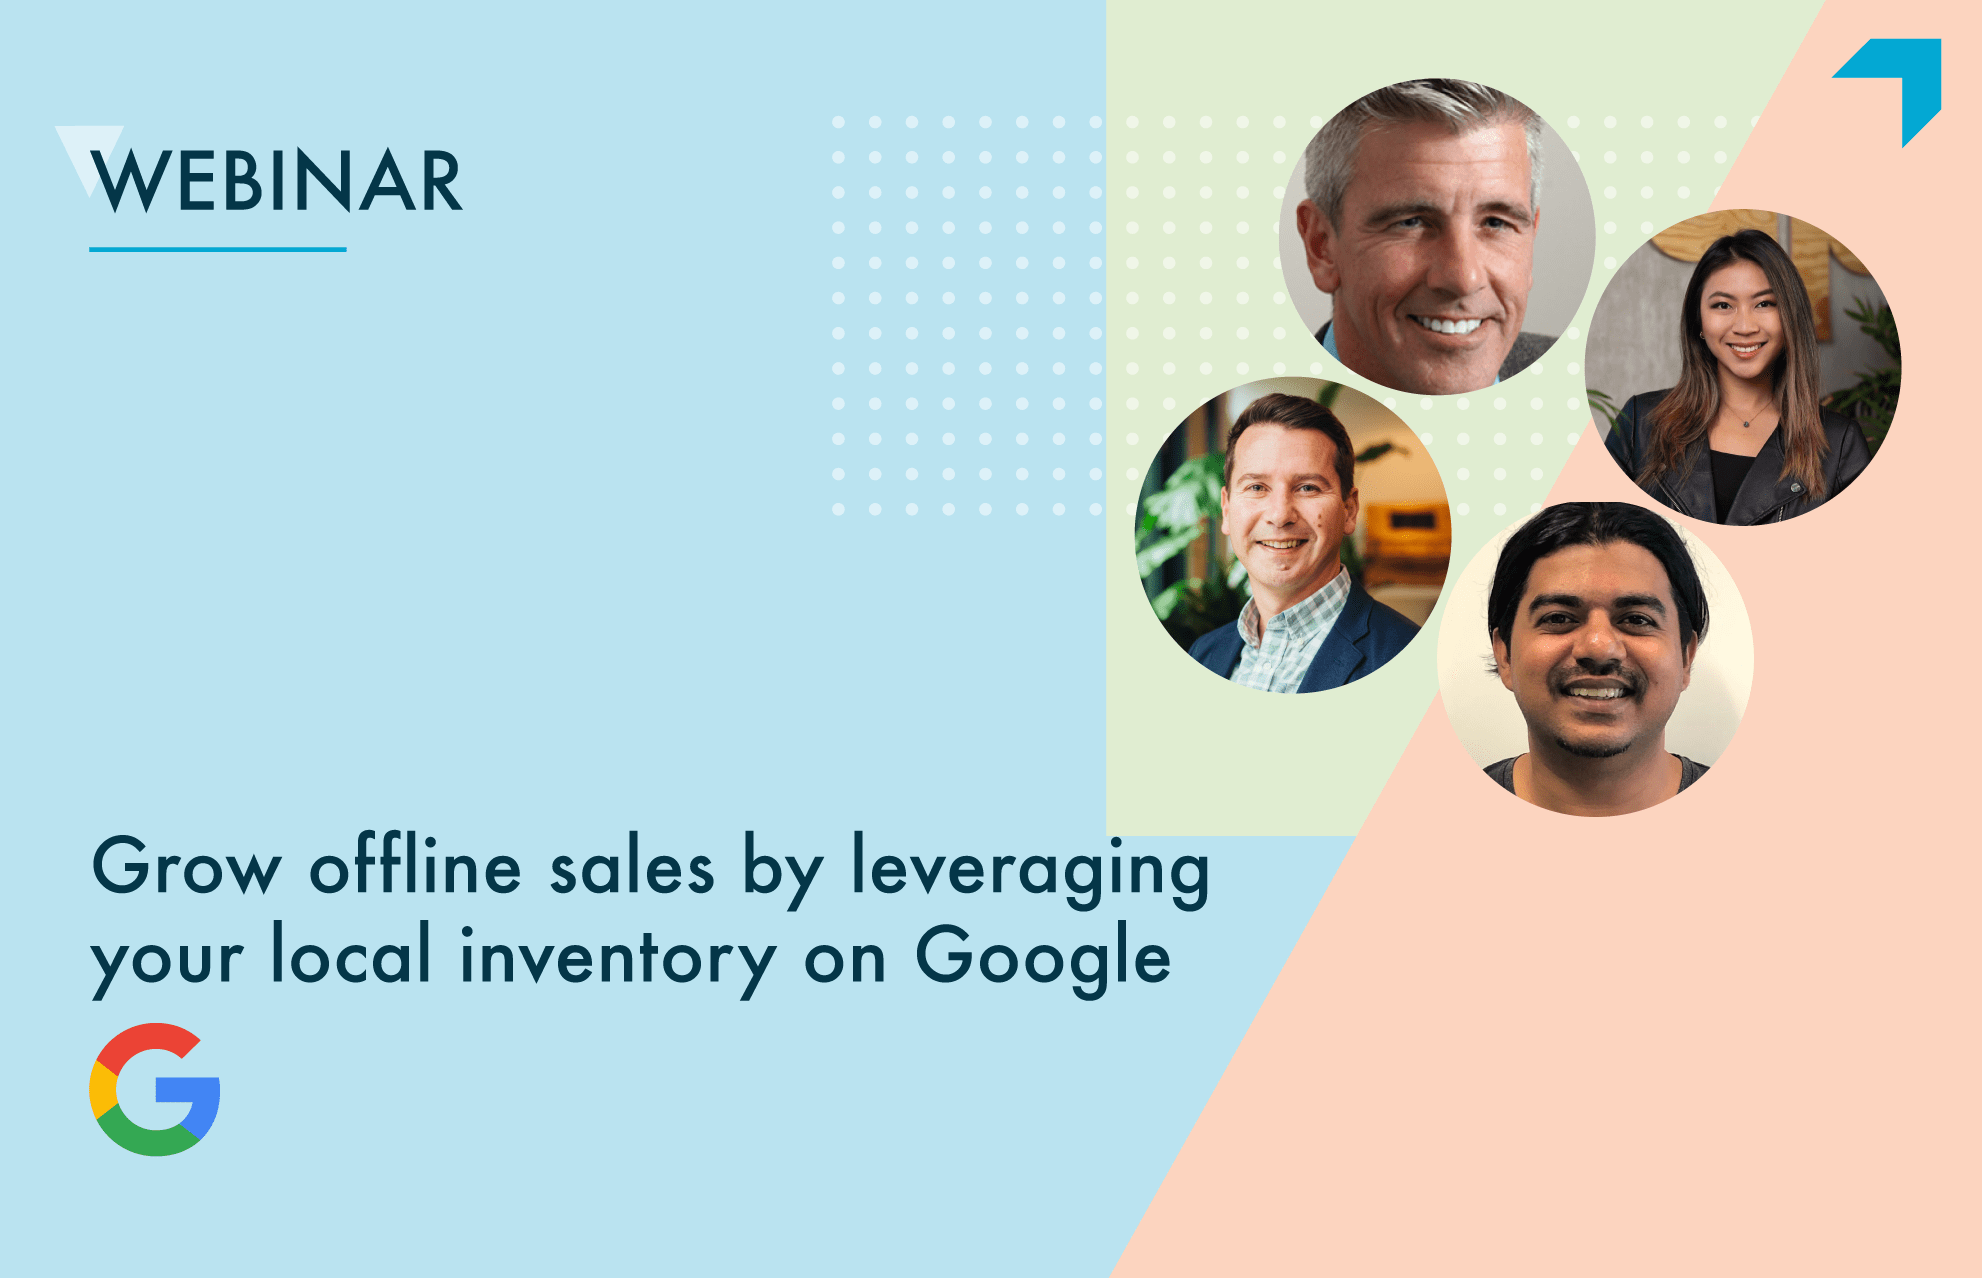 Grow offline sales by leveraging your local inventory on Google